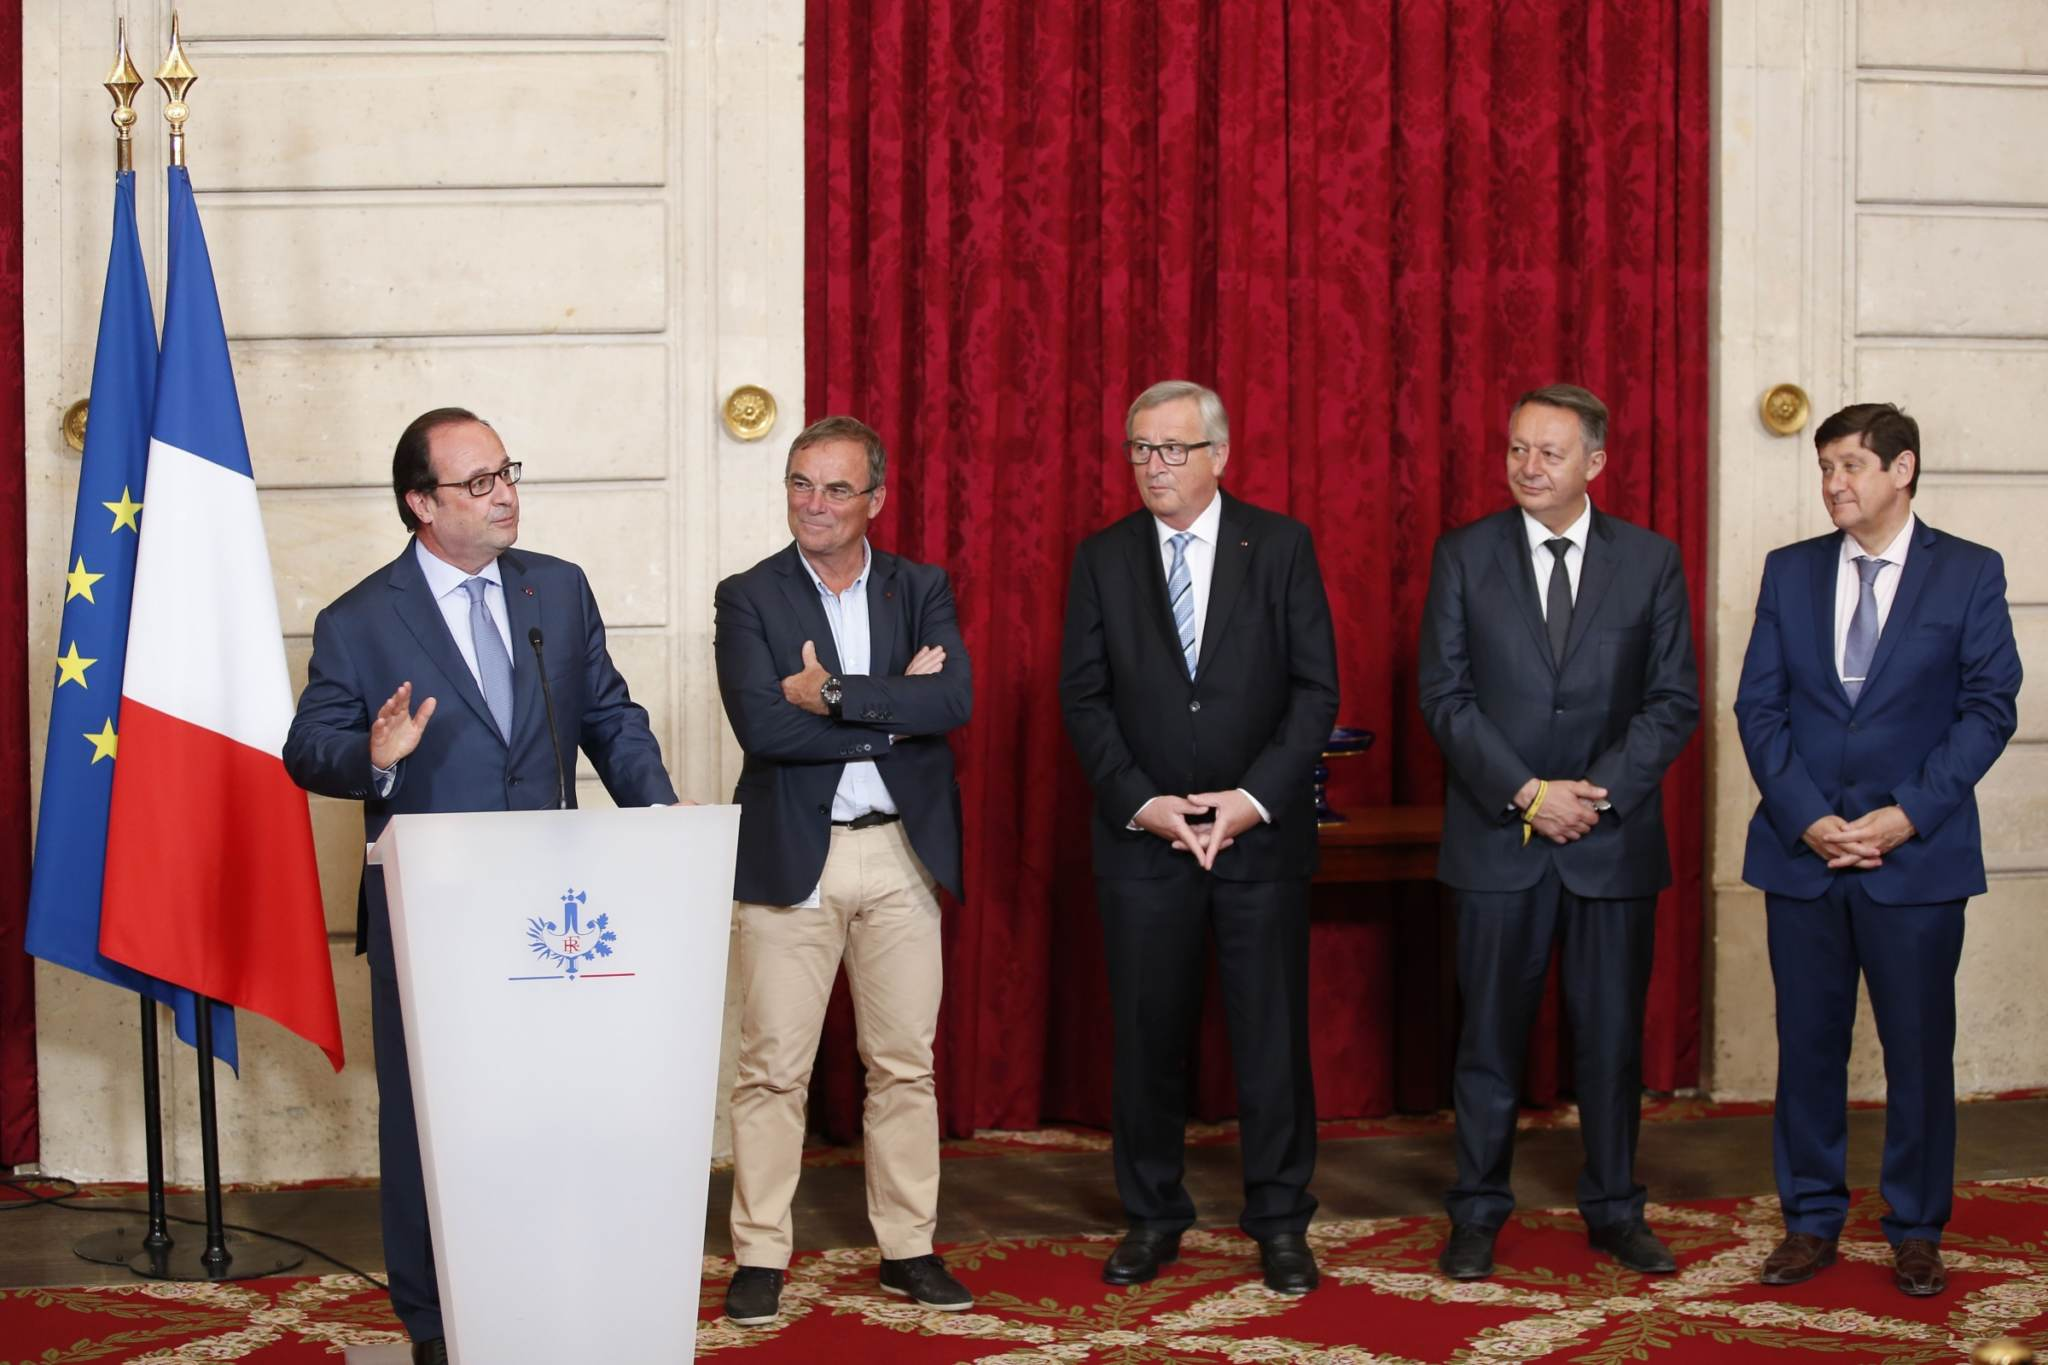 French president Francois Hollande (L) speaks next to French former cyclist Bernard Hinault (2L) during a ceremony rewarding him for his career as European Commission President Jean-Claude Juncker (C) and French Minister for Cities, Youth and Sport Patrick Kanner (R) listen on July 24, 2016 at the Elysee Palace in Paris. / AFP PHOTO / MATTHIEU ALEXANDRE